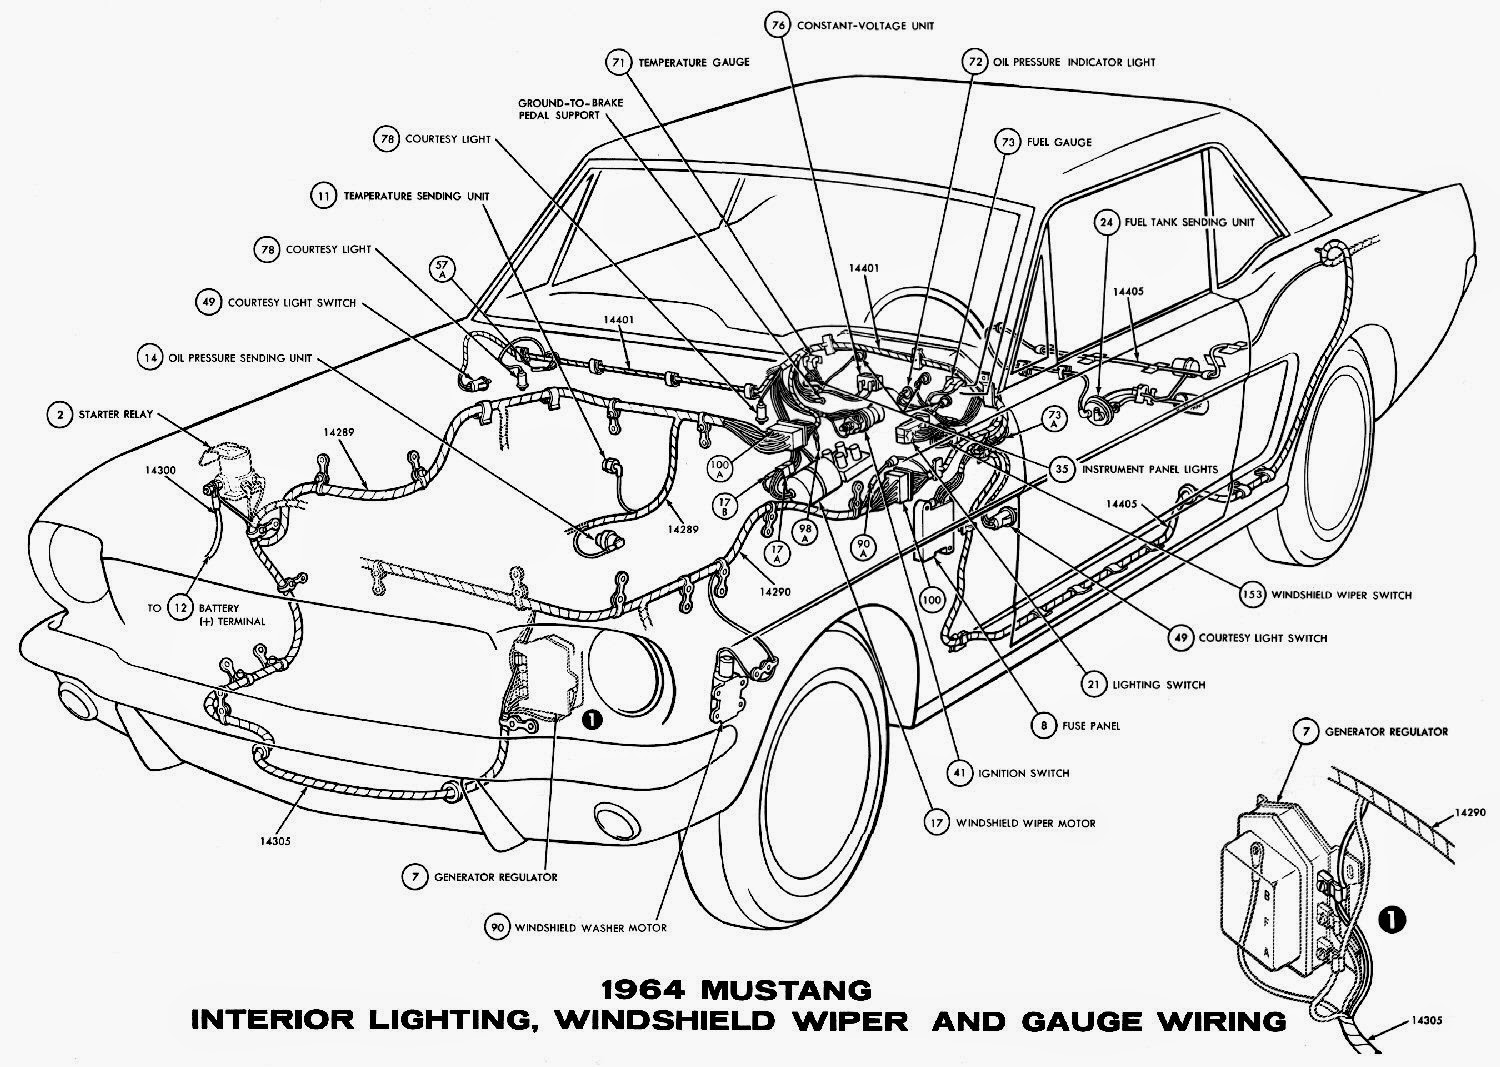 1964 Mustang Wiring Diagrams   Schematic Wiring Diagrams Solutions